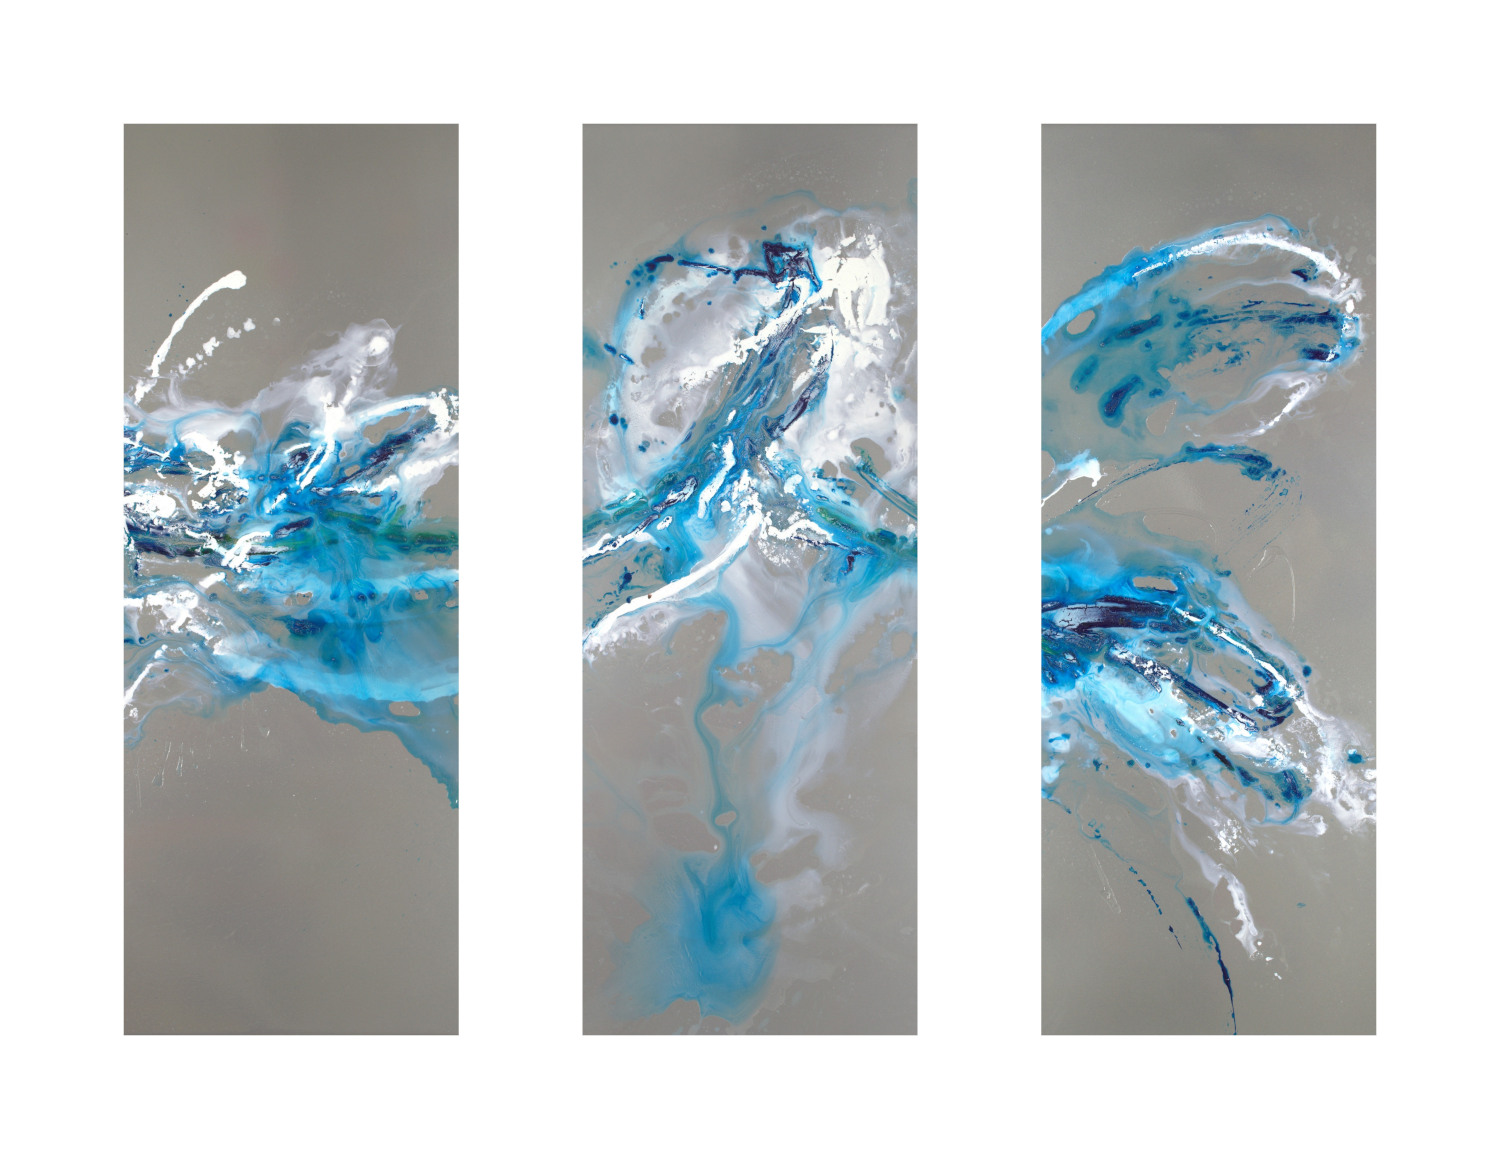 Splash of Royal Blue - 31 x 45